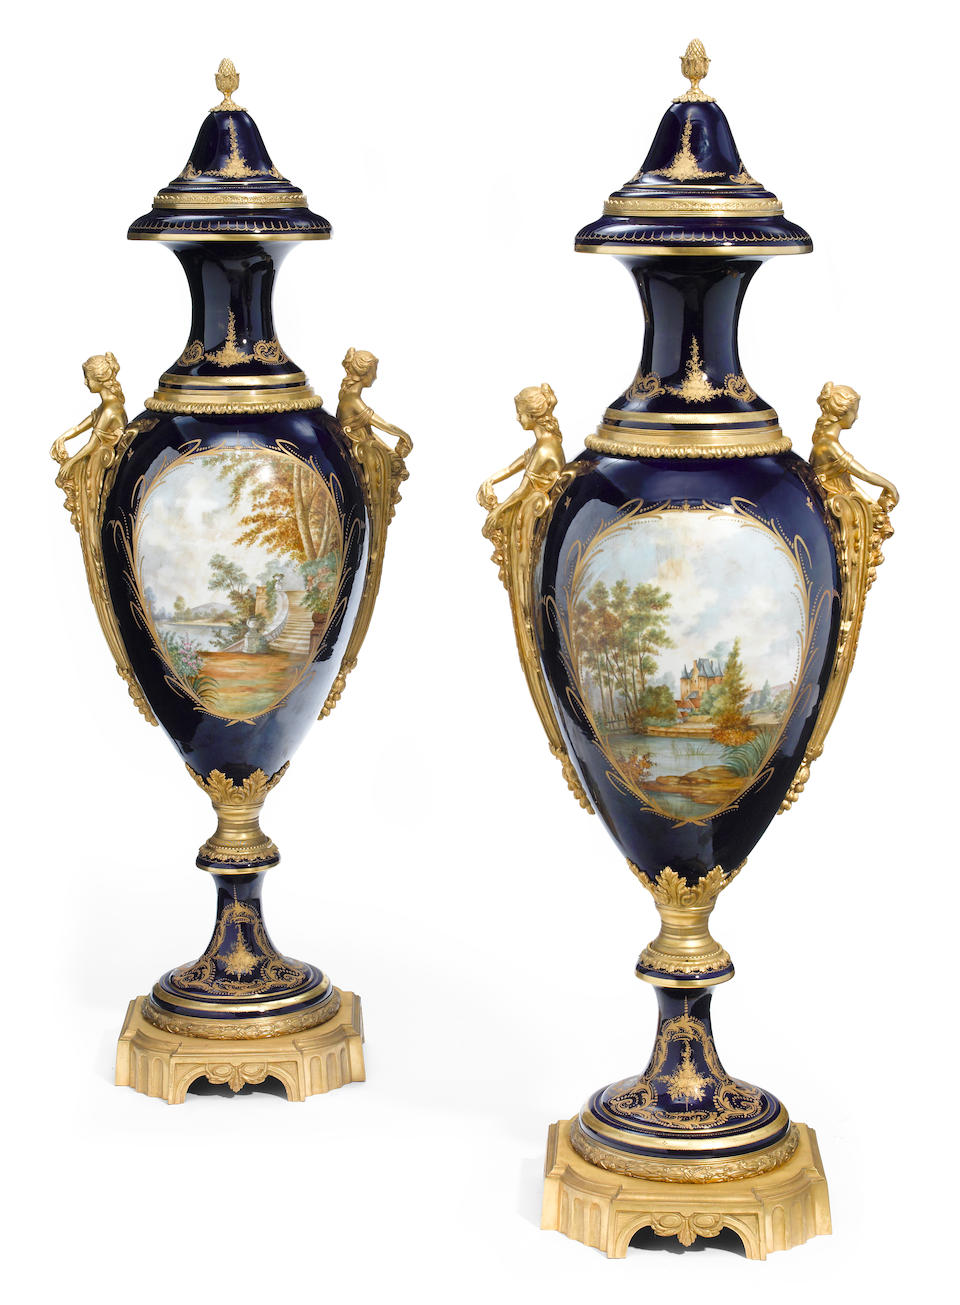 An imposing pair of Sèvres style porcelain gilt bronze mounted covered urns  20th century